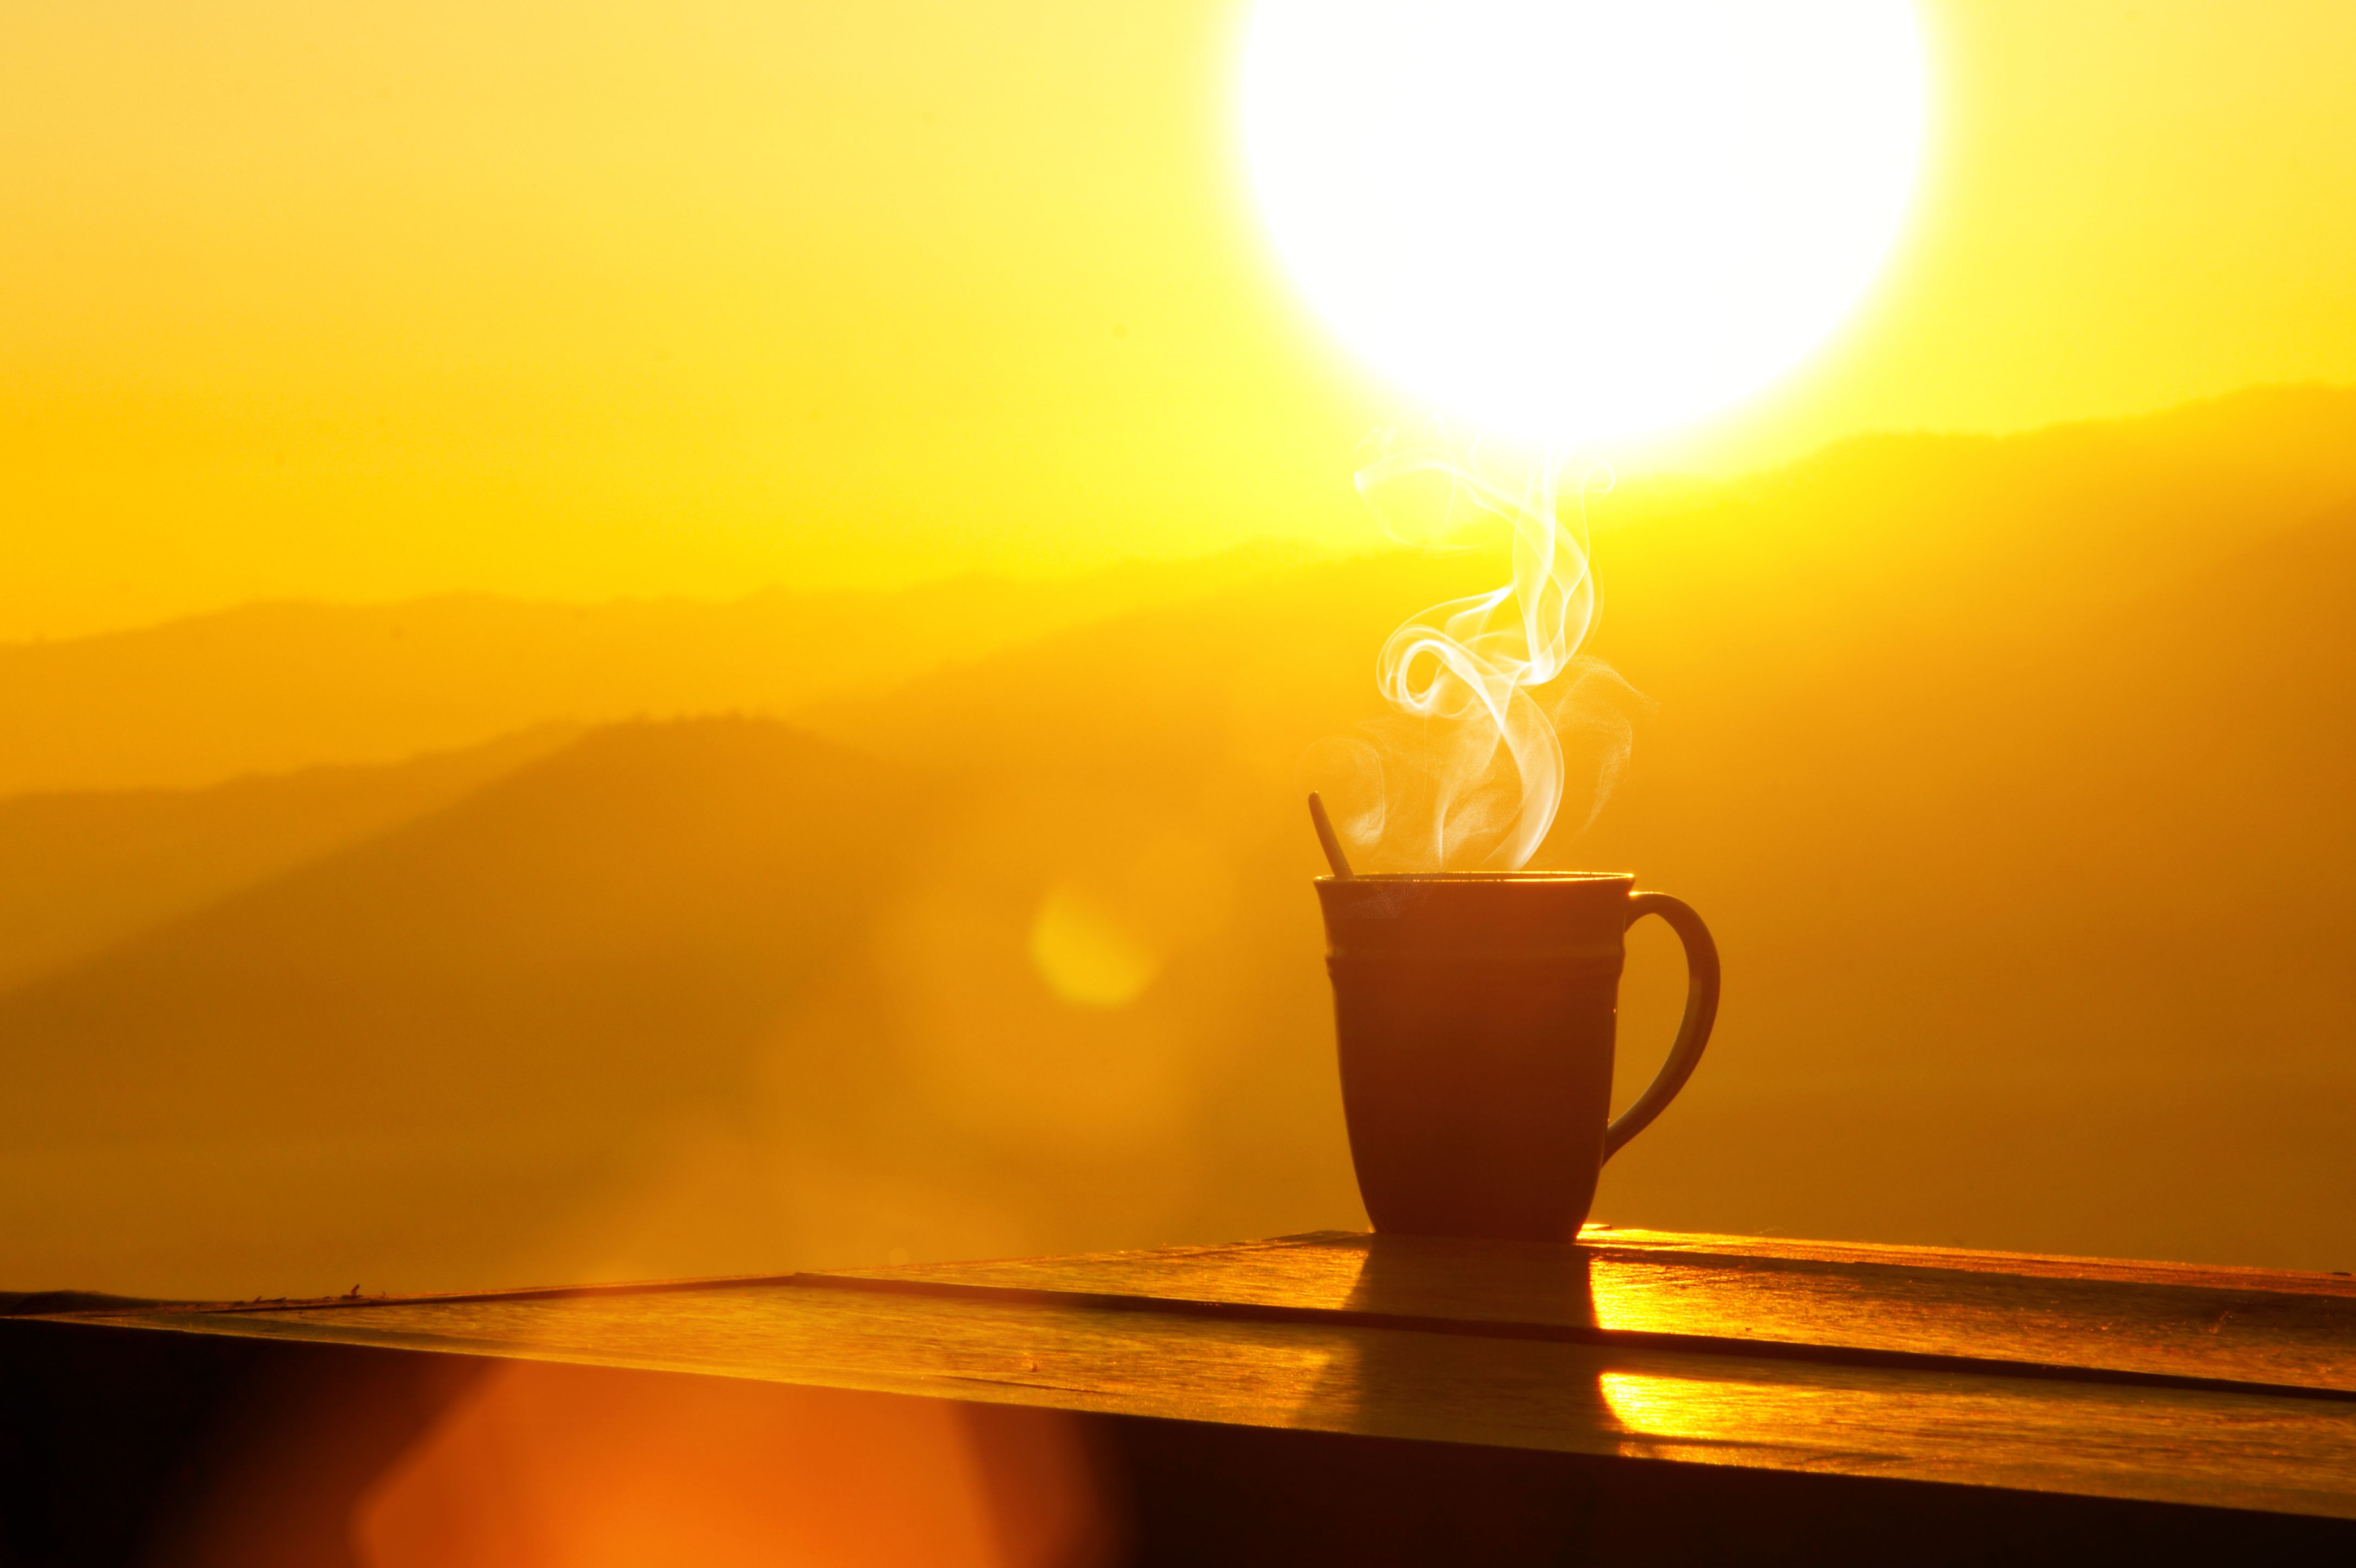 Talk about a perfect day! A sunrise and a great cup of